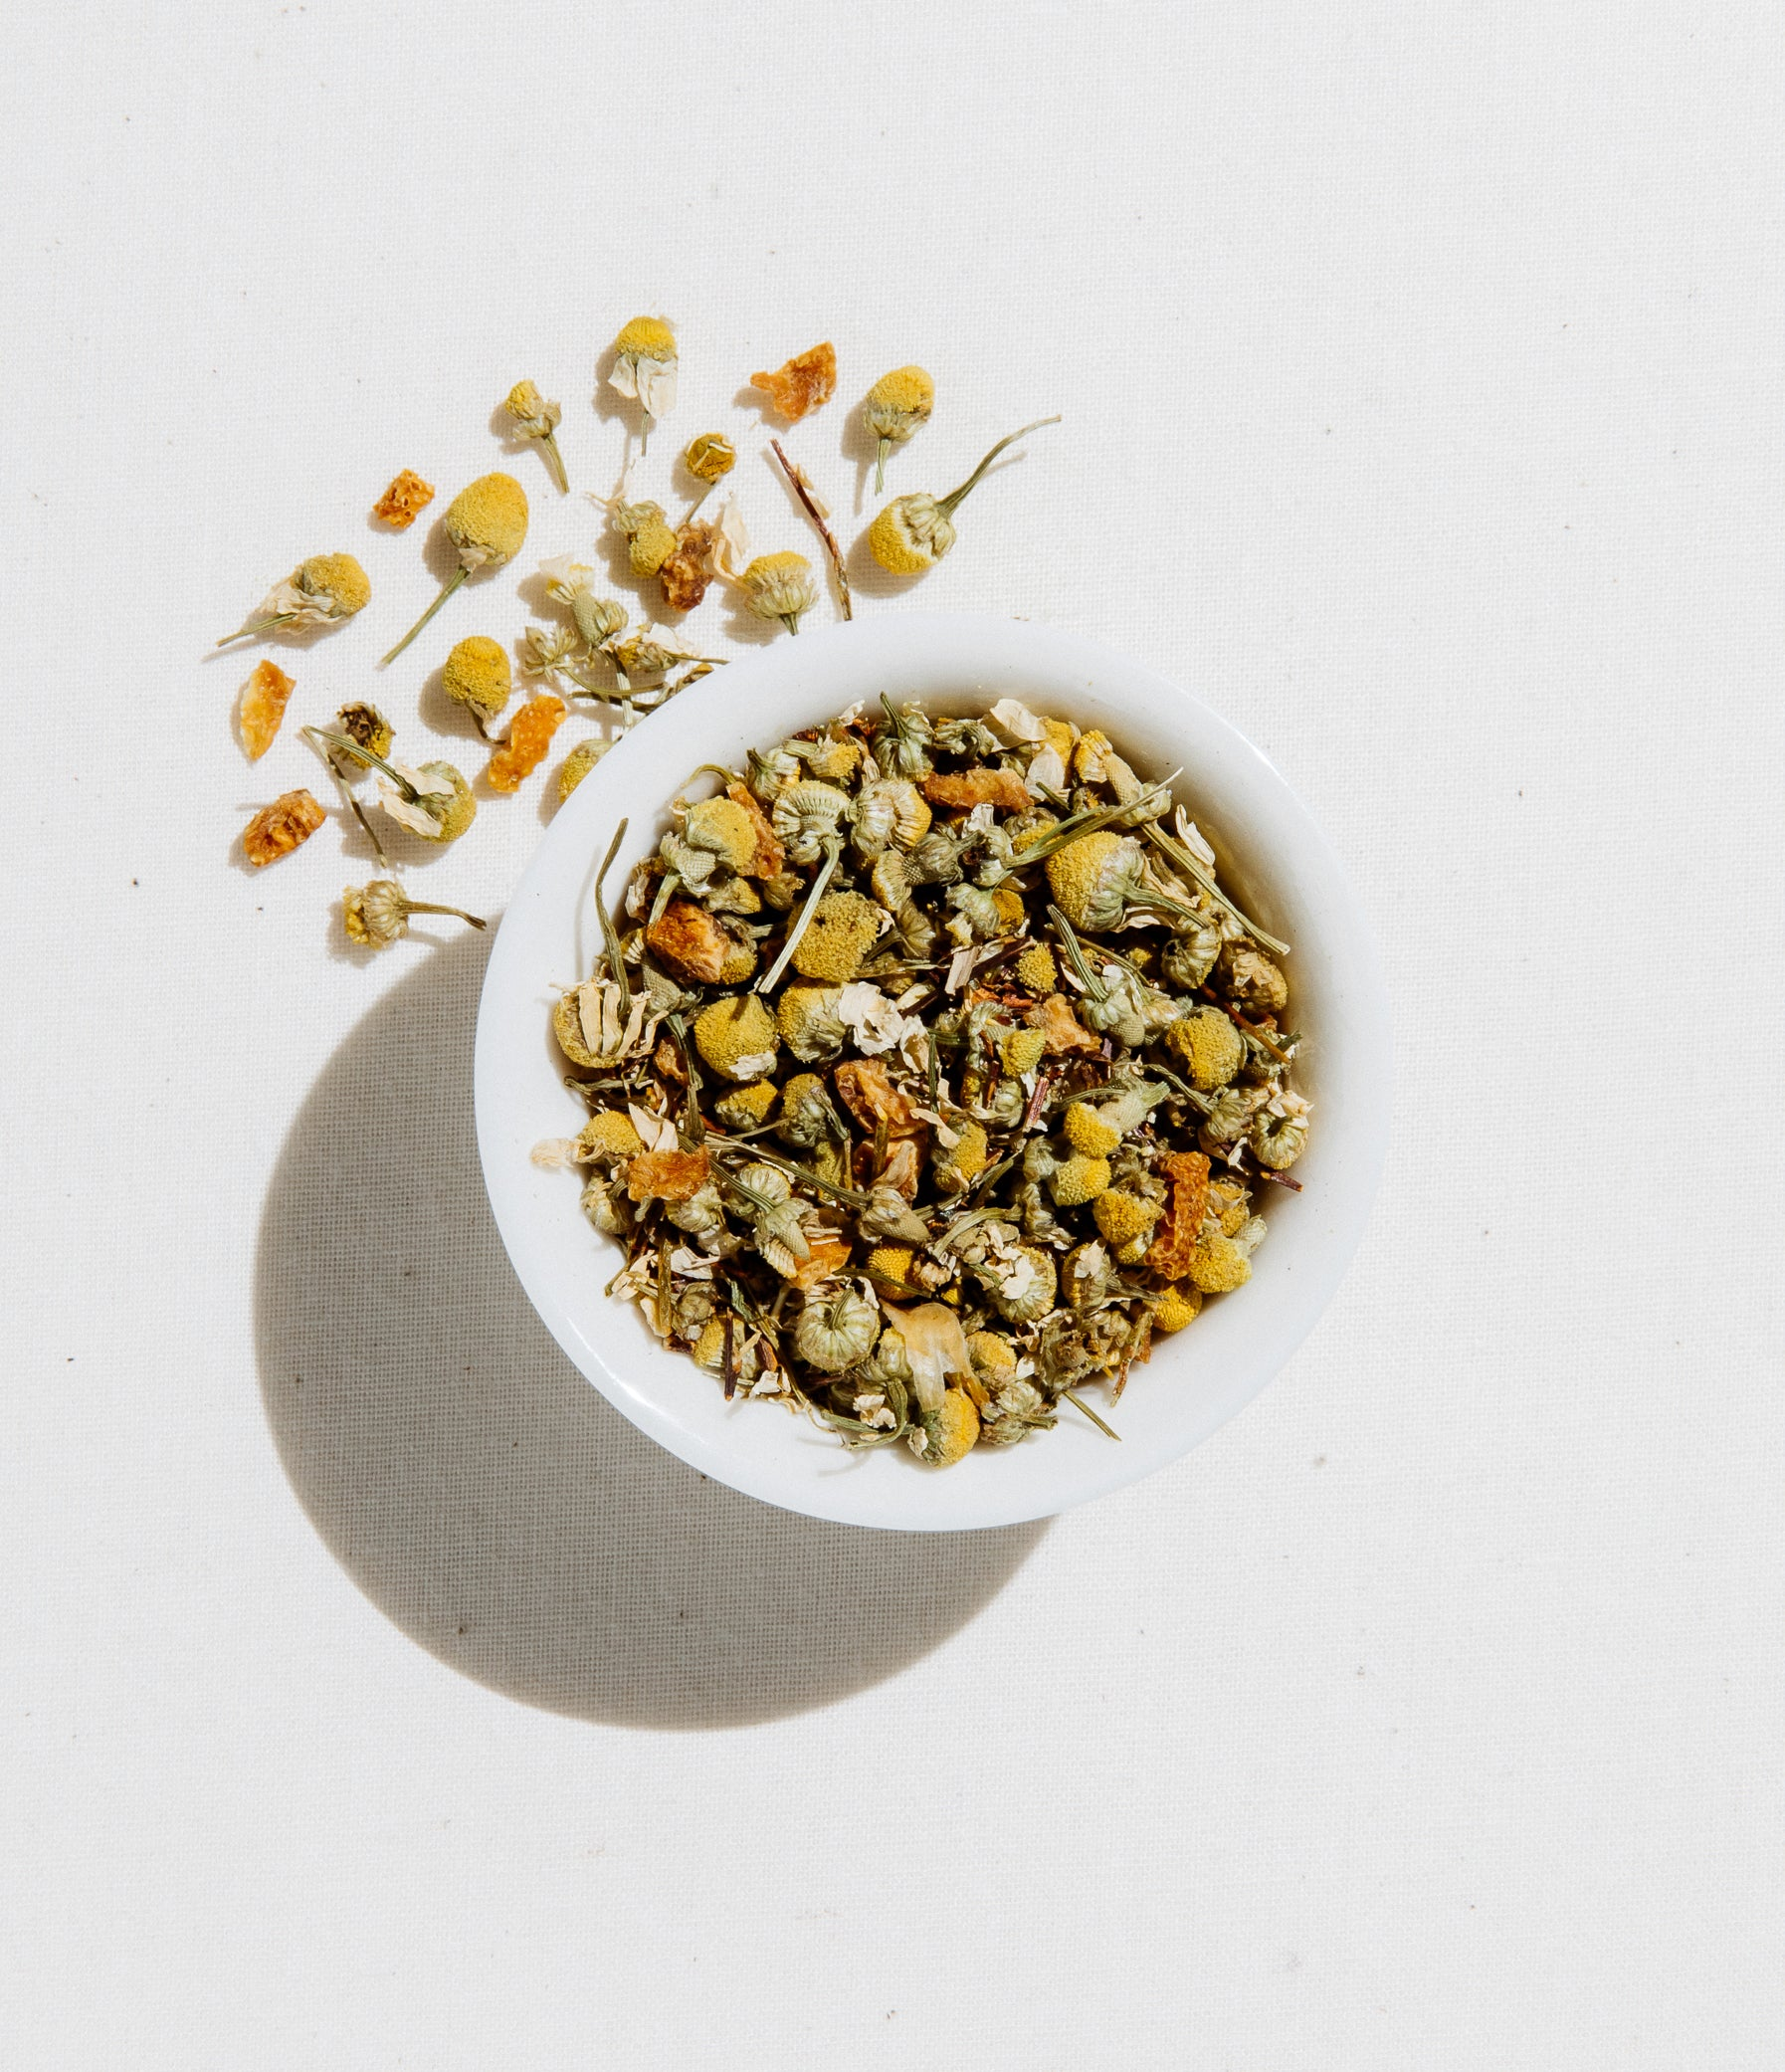 Chamomile Clementine Tea Organic Loose Leaf 4 oz Zip Pouch by Art of Tea